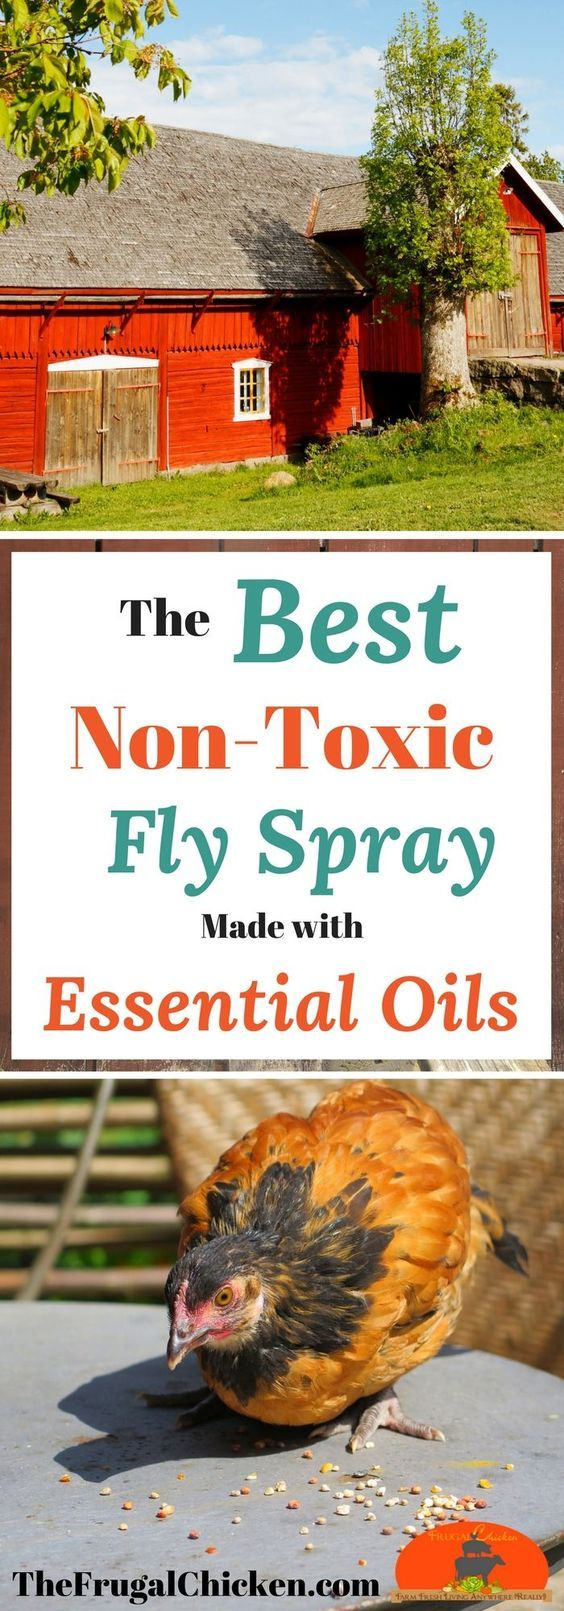 Summer is coming...which means lots of flies. Keep bugs away from your kids, livestock, and chickens with the best homemade fly spray recipe made with Eucalyptus, Lemongrass, and Peppermint essential oils. Make it in your own home!